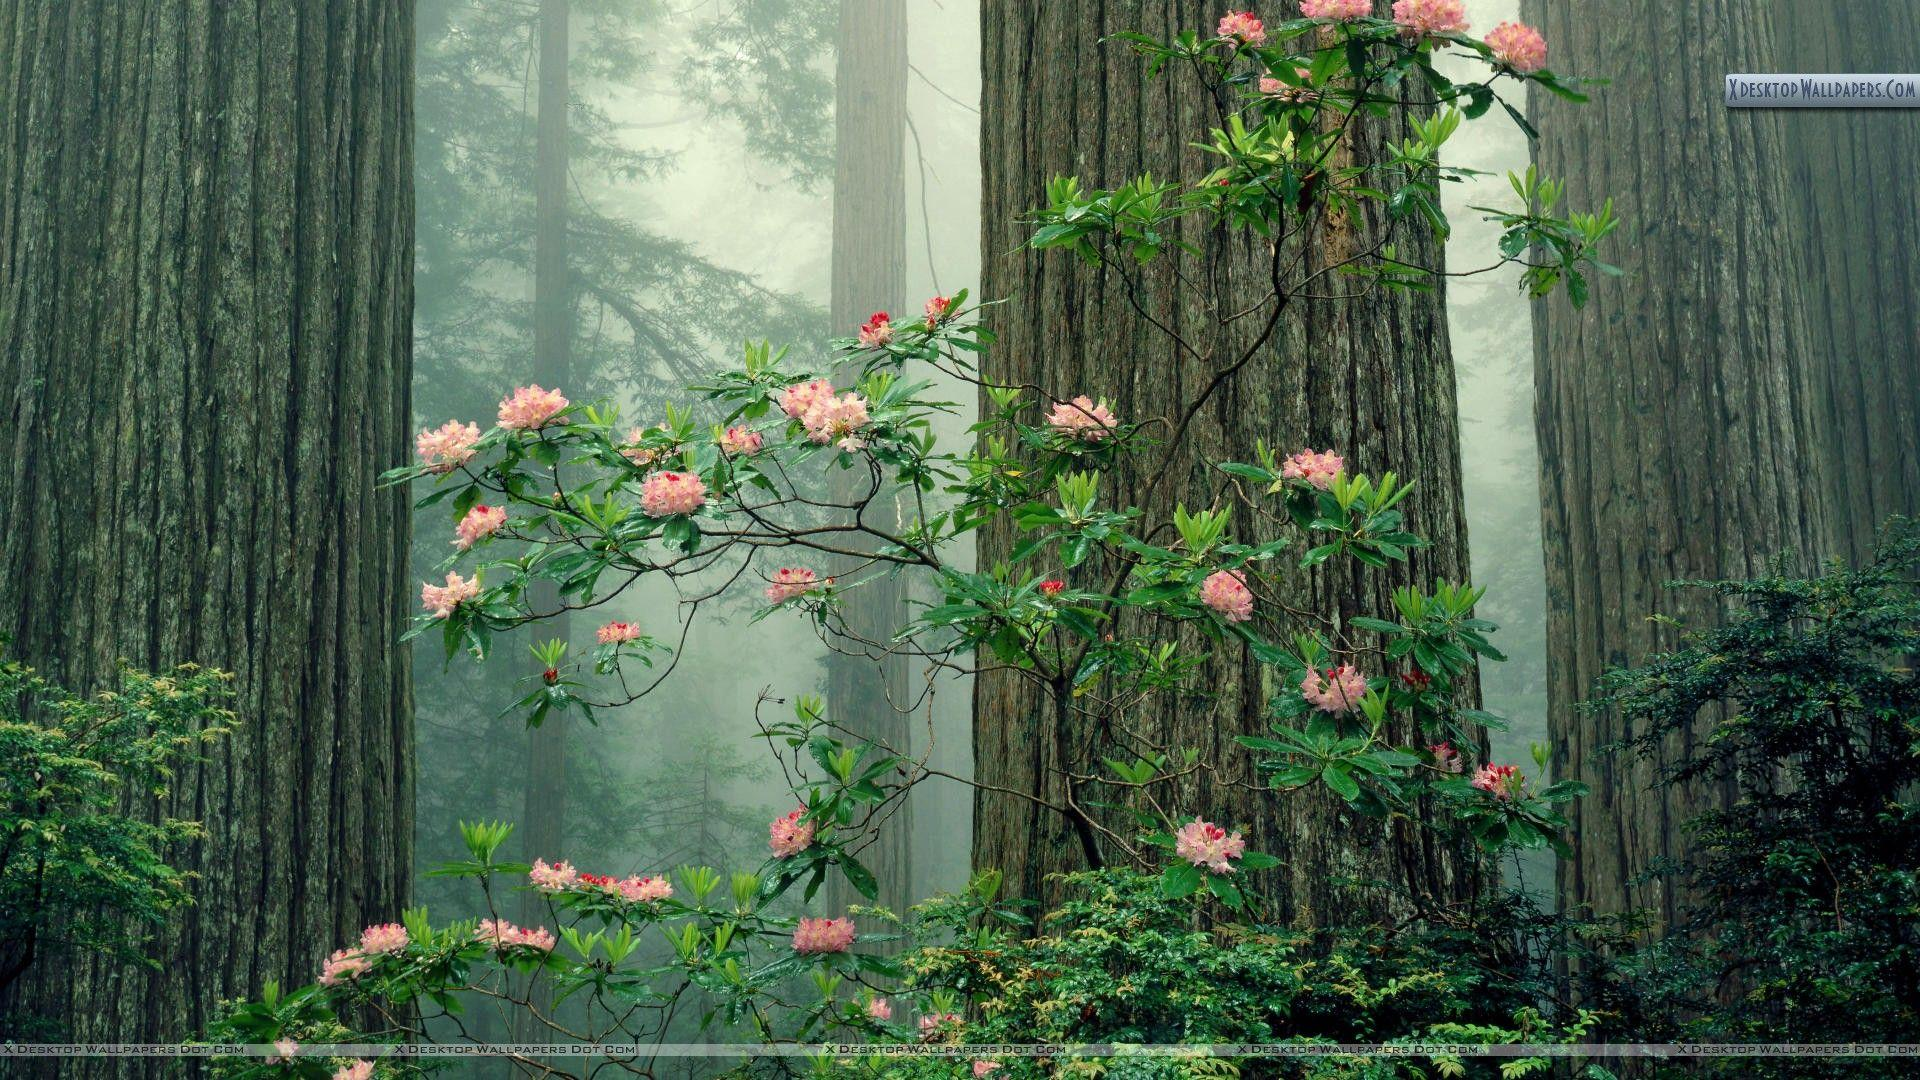 Rhododendrons in Bloom, Redwood National Park, California Wallpapers